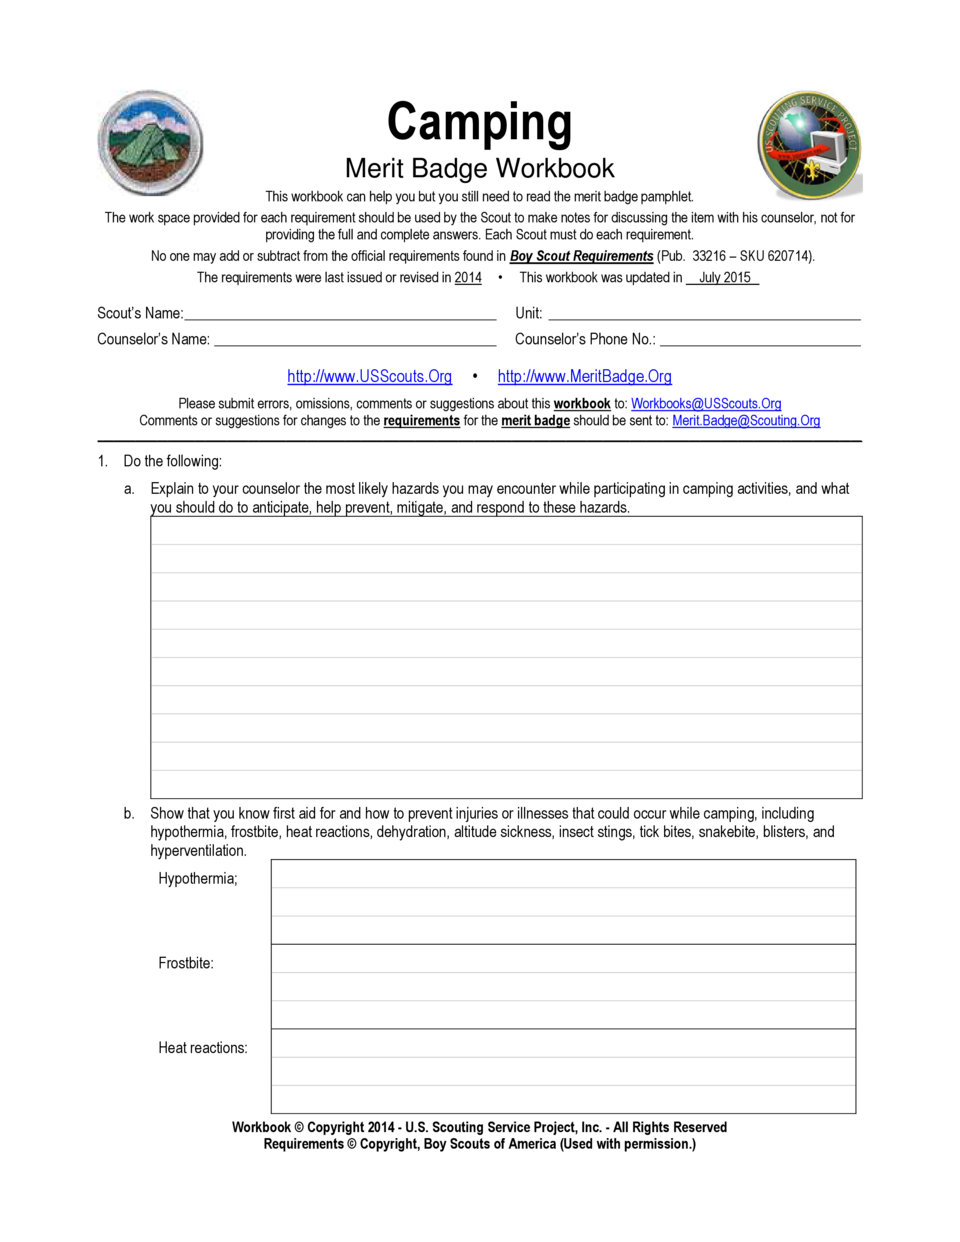 Printables Boy Scout Merit Badge Worksheets camping merit badge simplebooklet com workbook this can help you but still need to read the